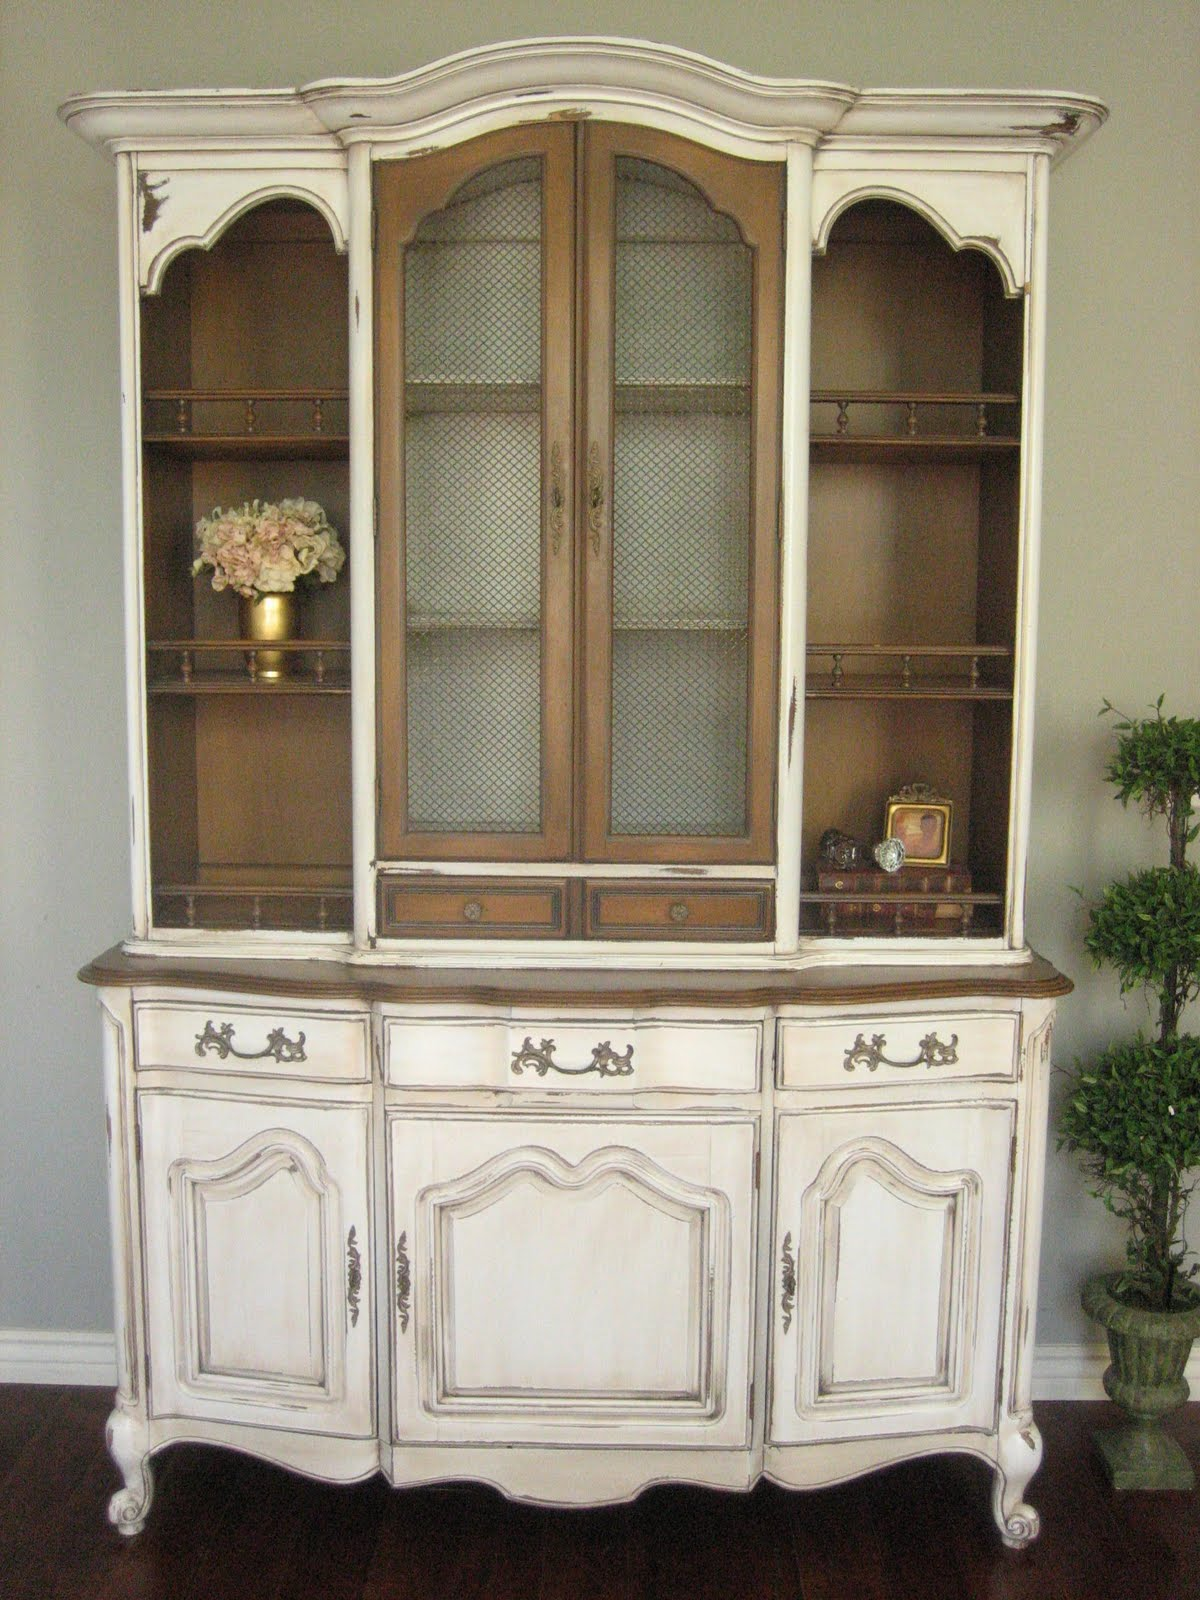 European Paint Finishes French Provincial Hutch : EPF FPHutch116 from europaintfinishes.blogspot.ca size 1200 x 1600 jpeg 258kB